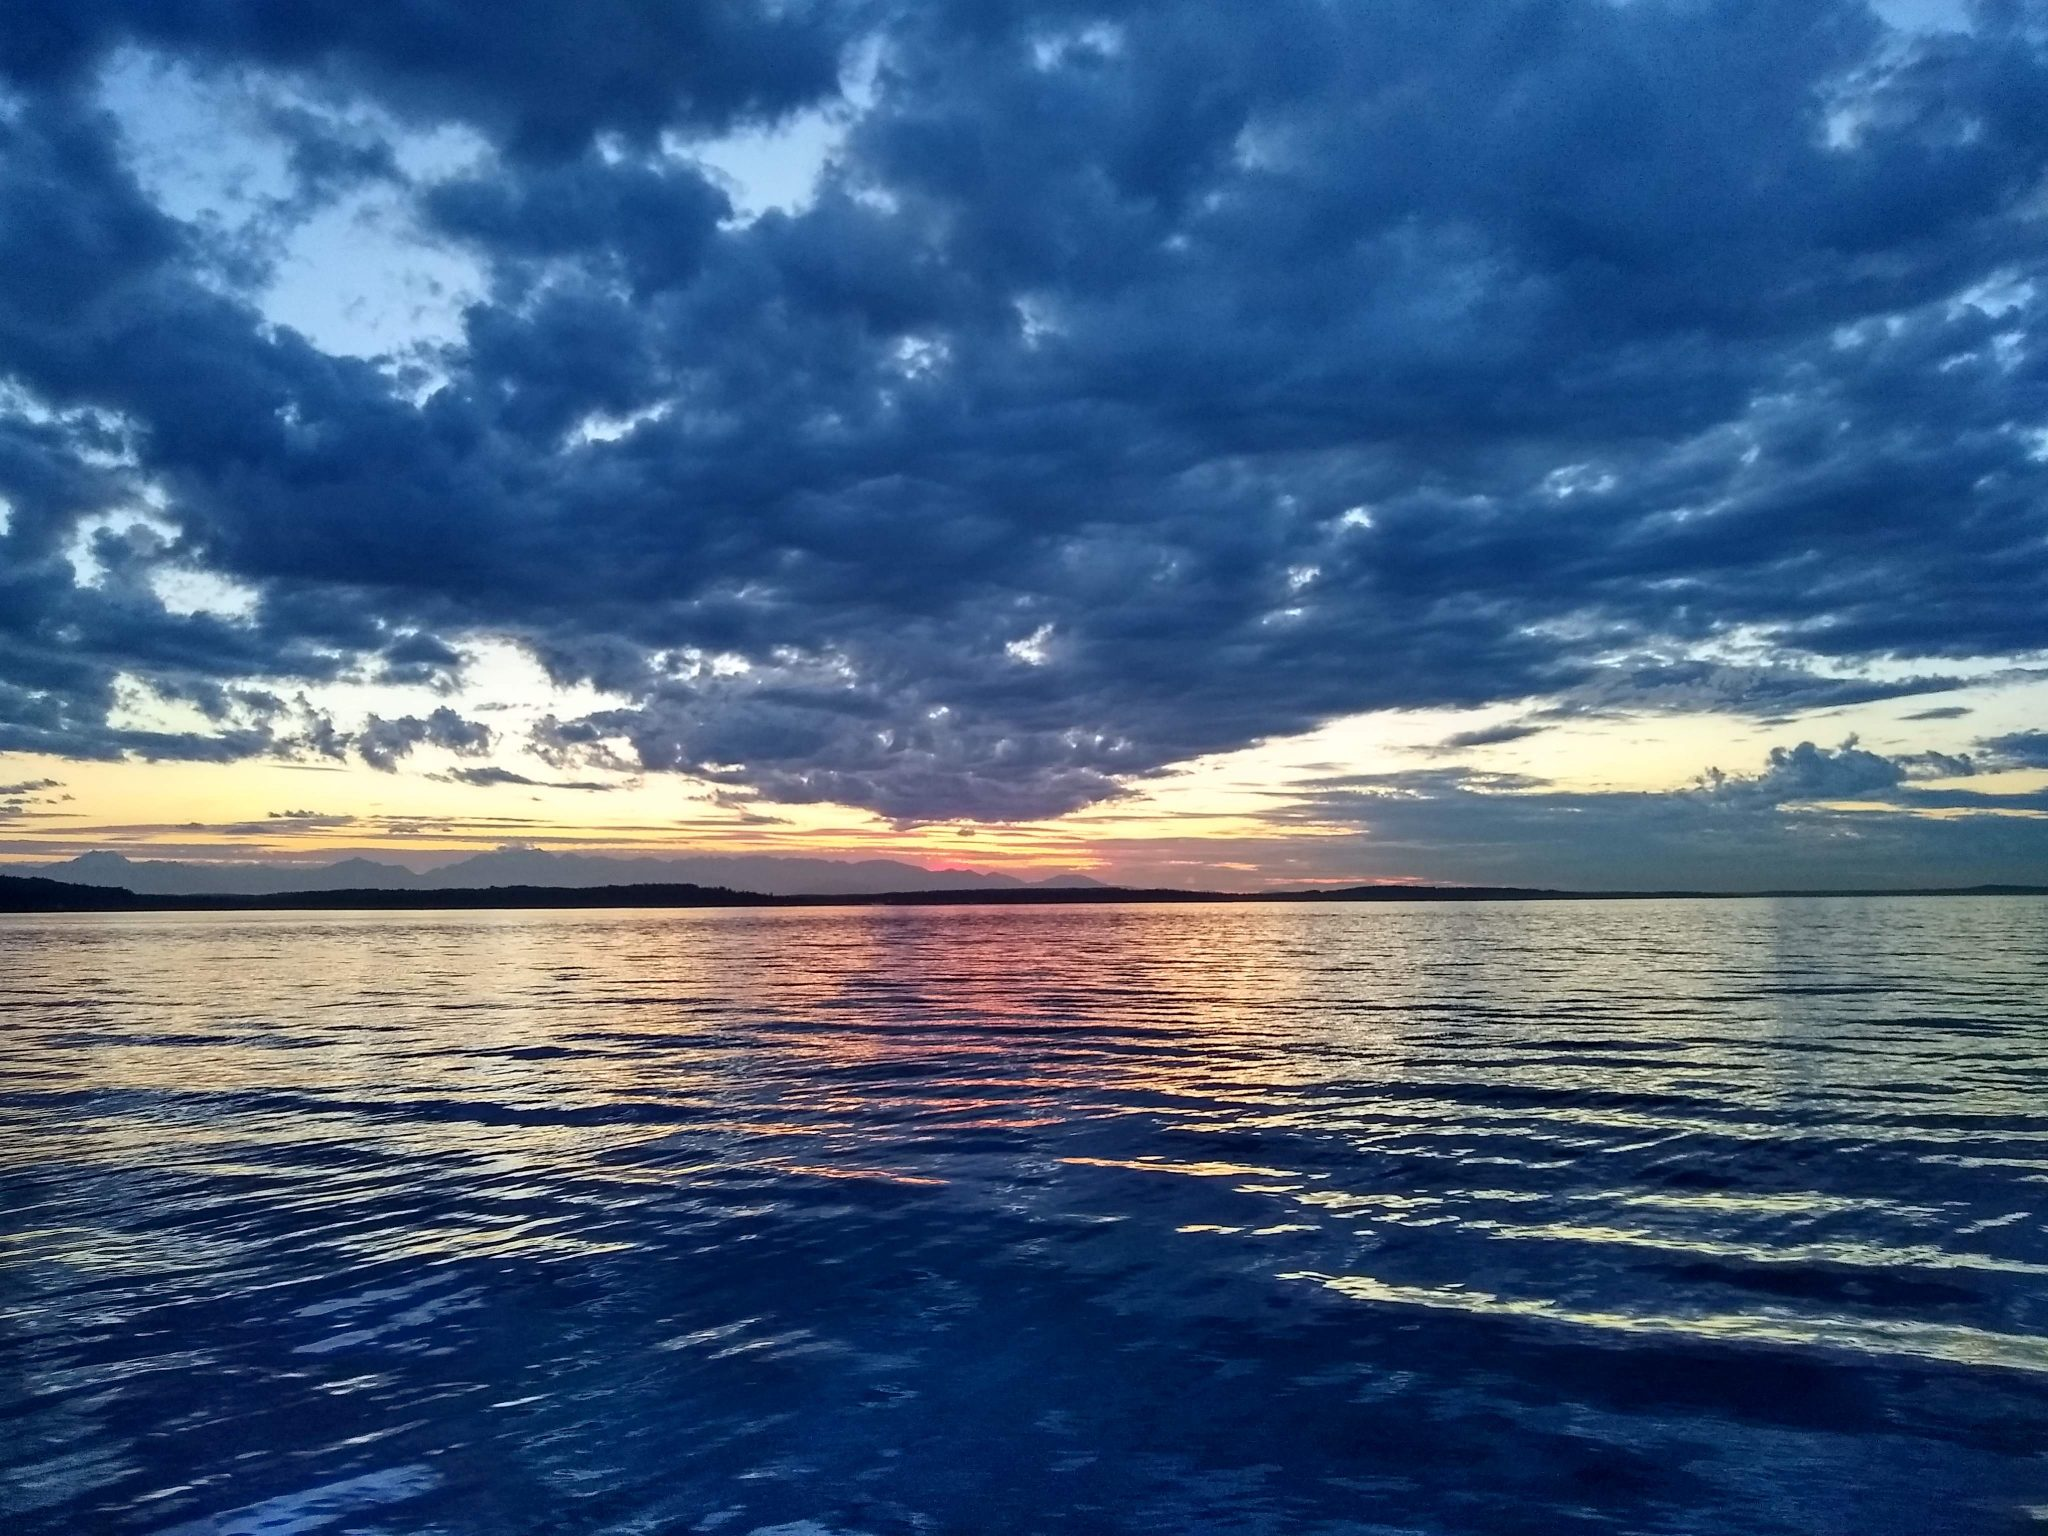 A sunset with lots of clouds and calm water. The sunset is pink and yellow